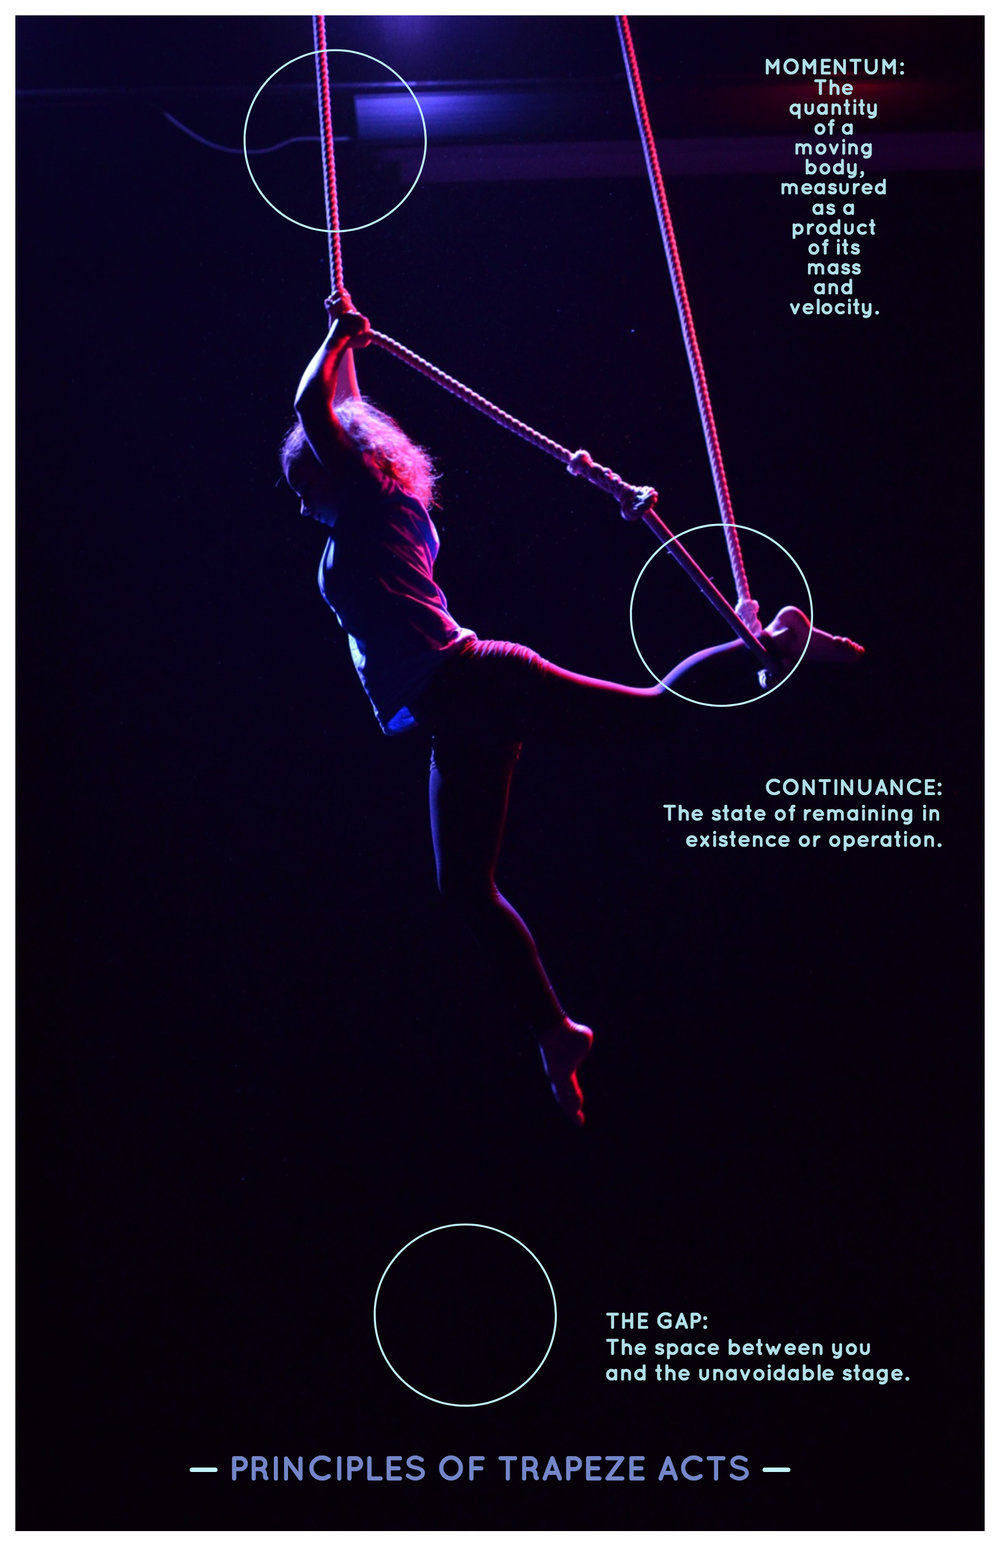 Principles of Trapeze Acts.jpg